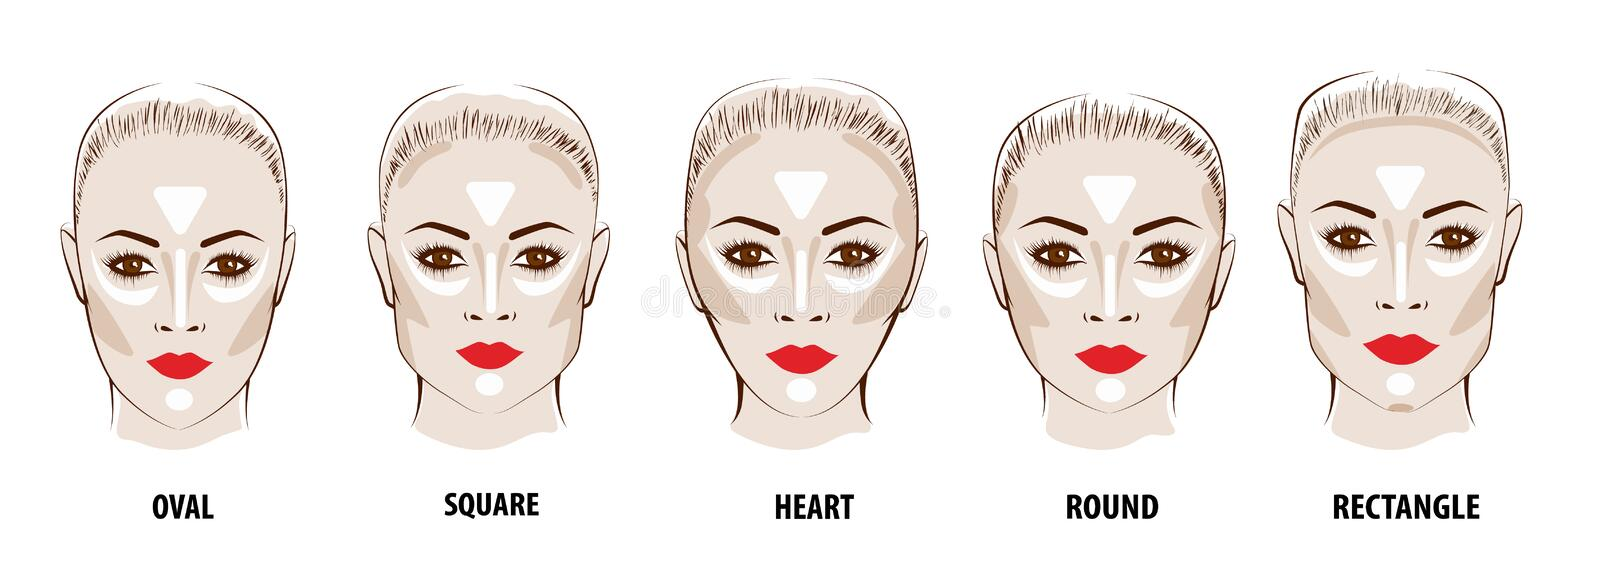 Contour and Highlight makeup. Contouring face make-up. Fashion illustration royalty free illustration